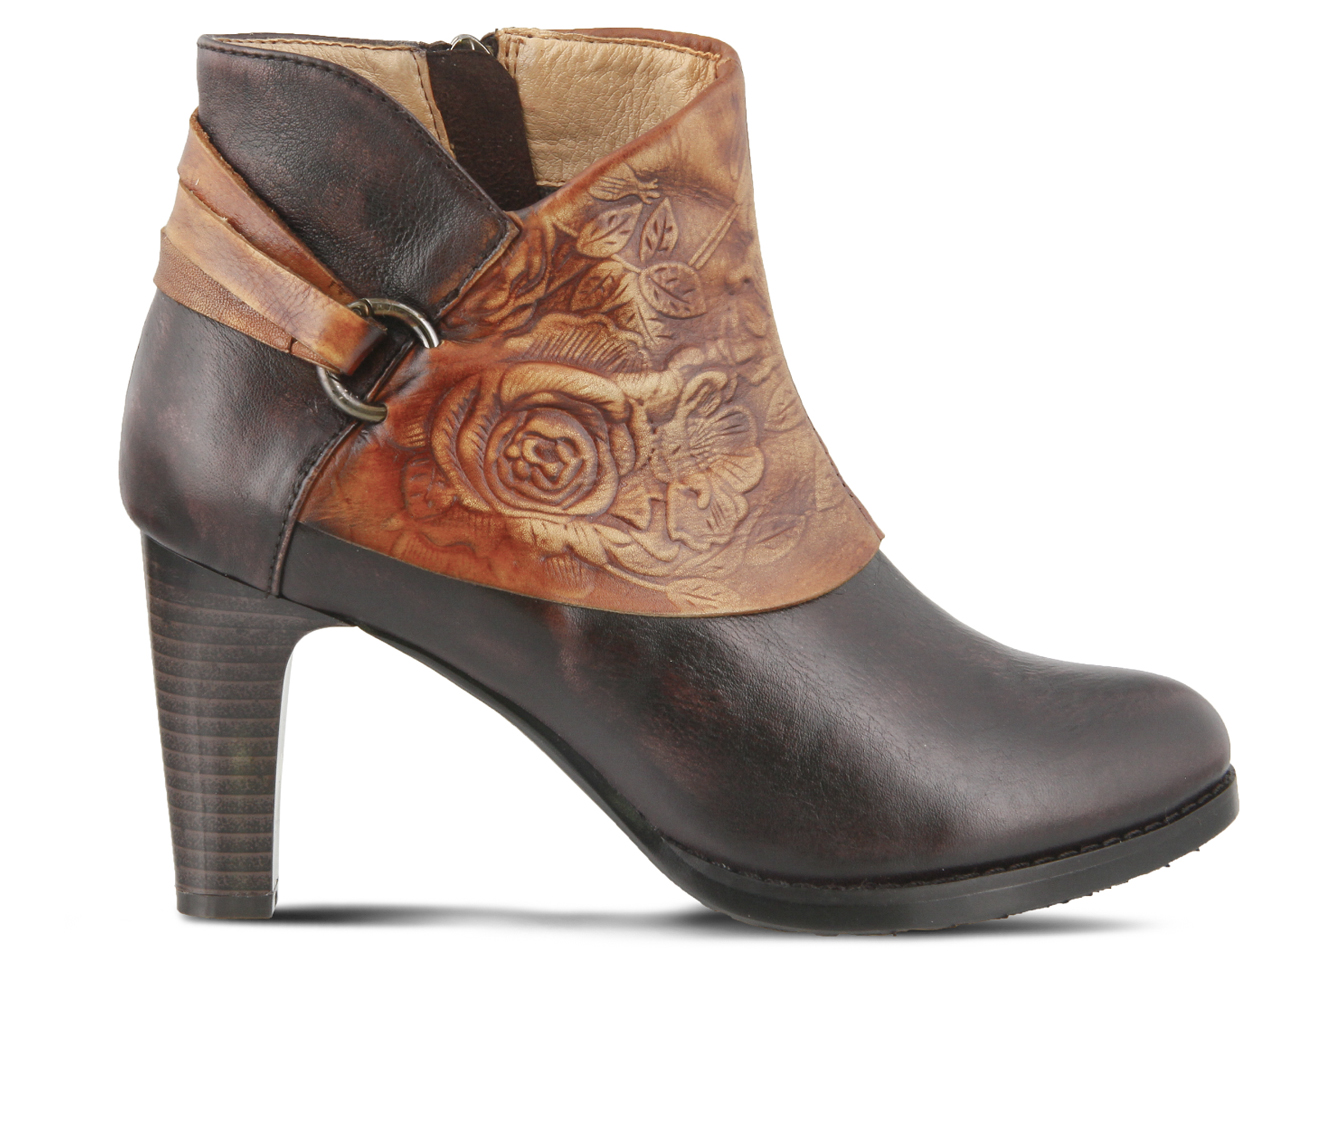 L'Artiste Lora Women's Boots (Brown Leather)